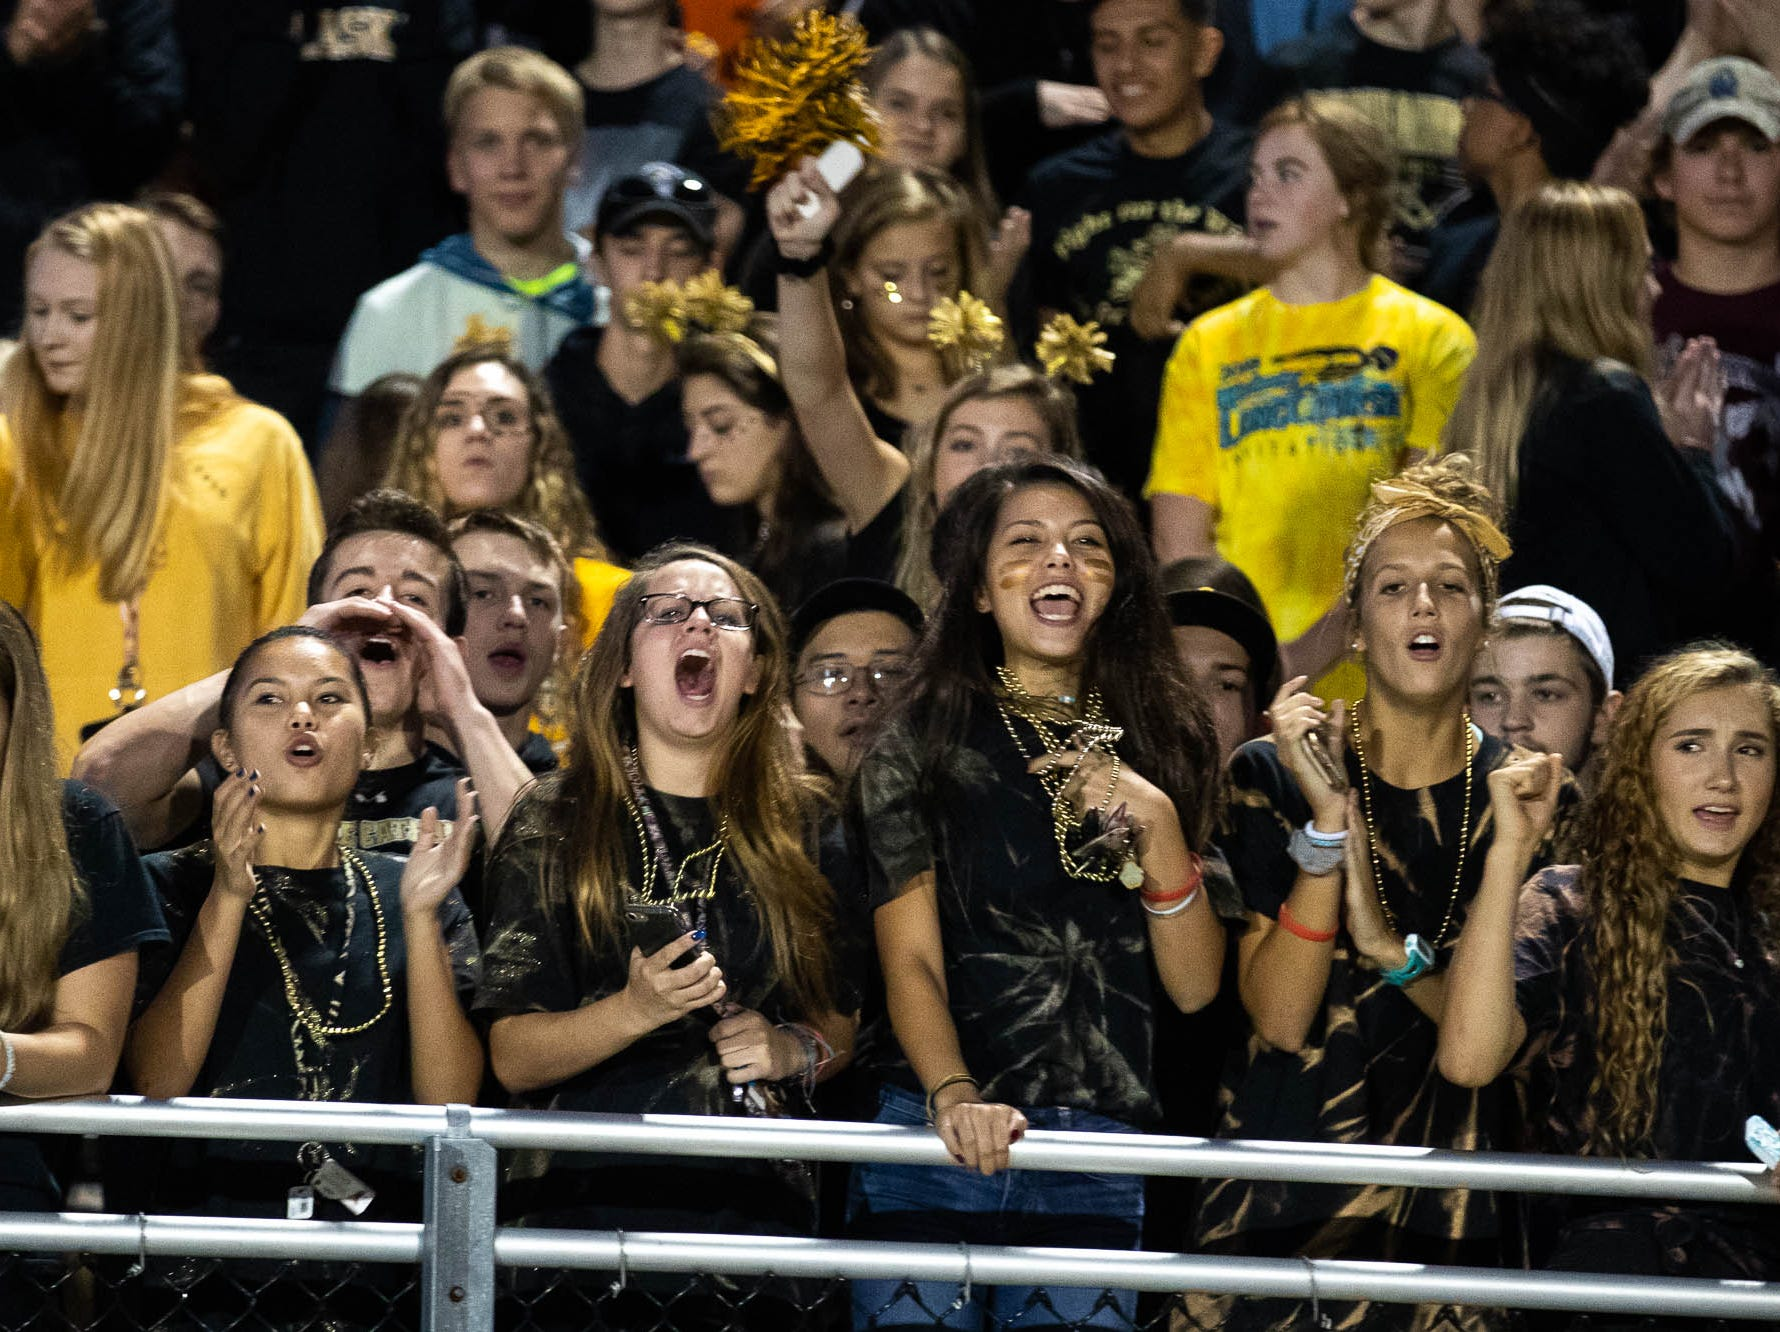 The Delone Catholic student section cheers during the first half of a football game between Delone Catholic and Biglerville, Friday, Sept. 28, 2018, in McSherrystown. Delone led Biglerville 35-0 at the half.